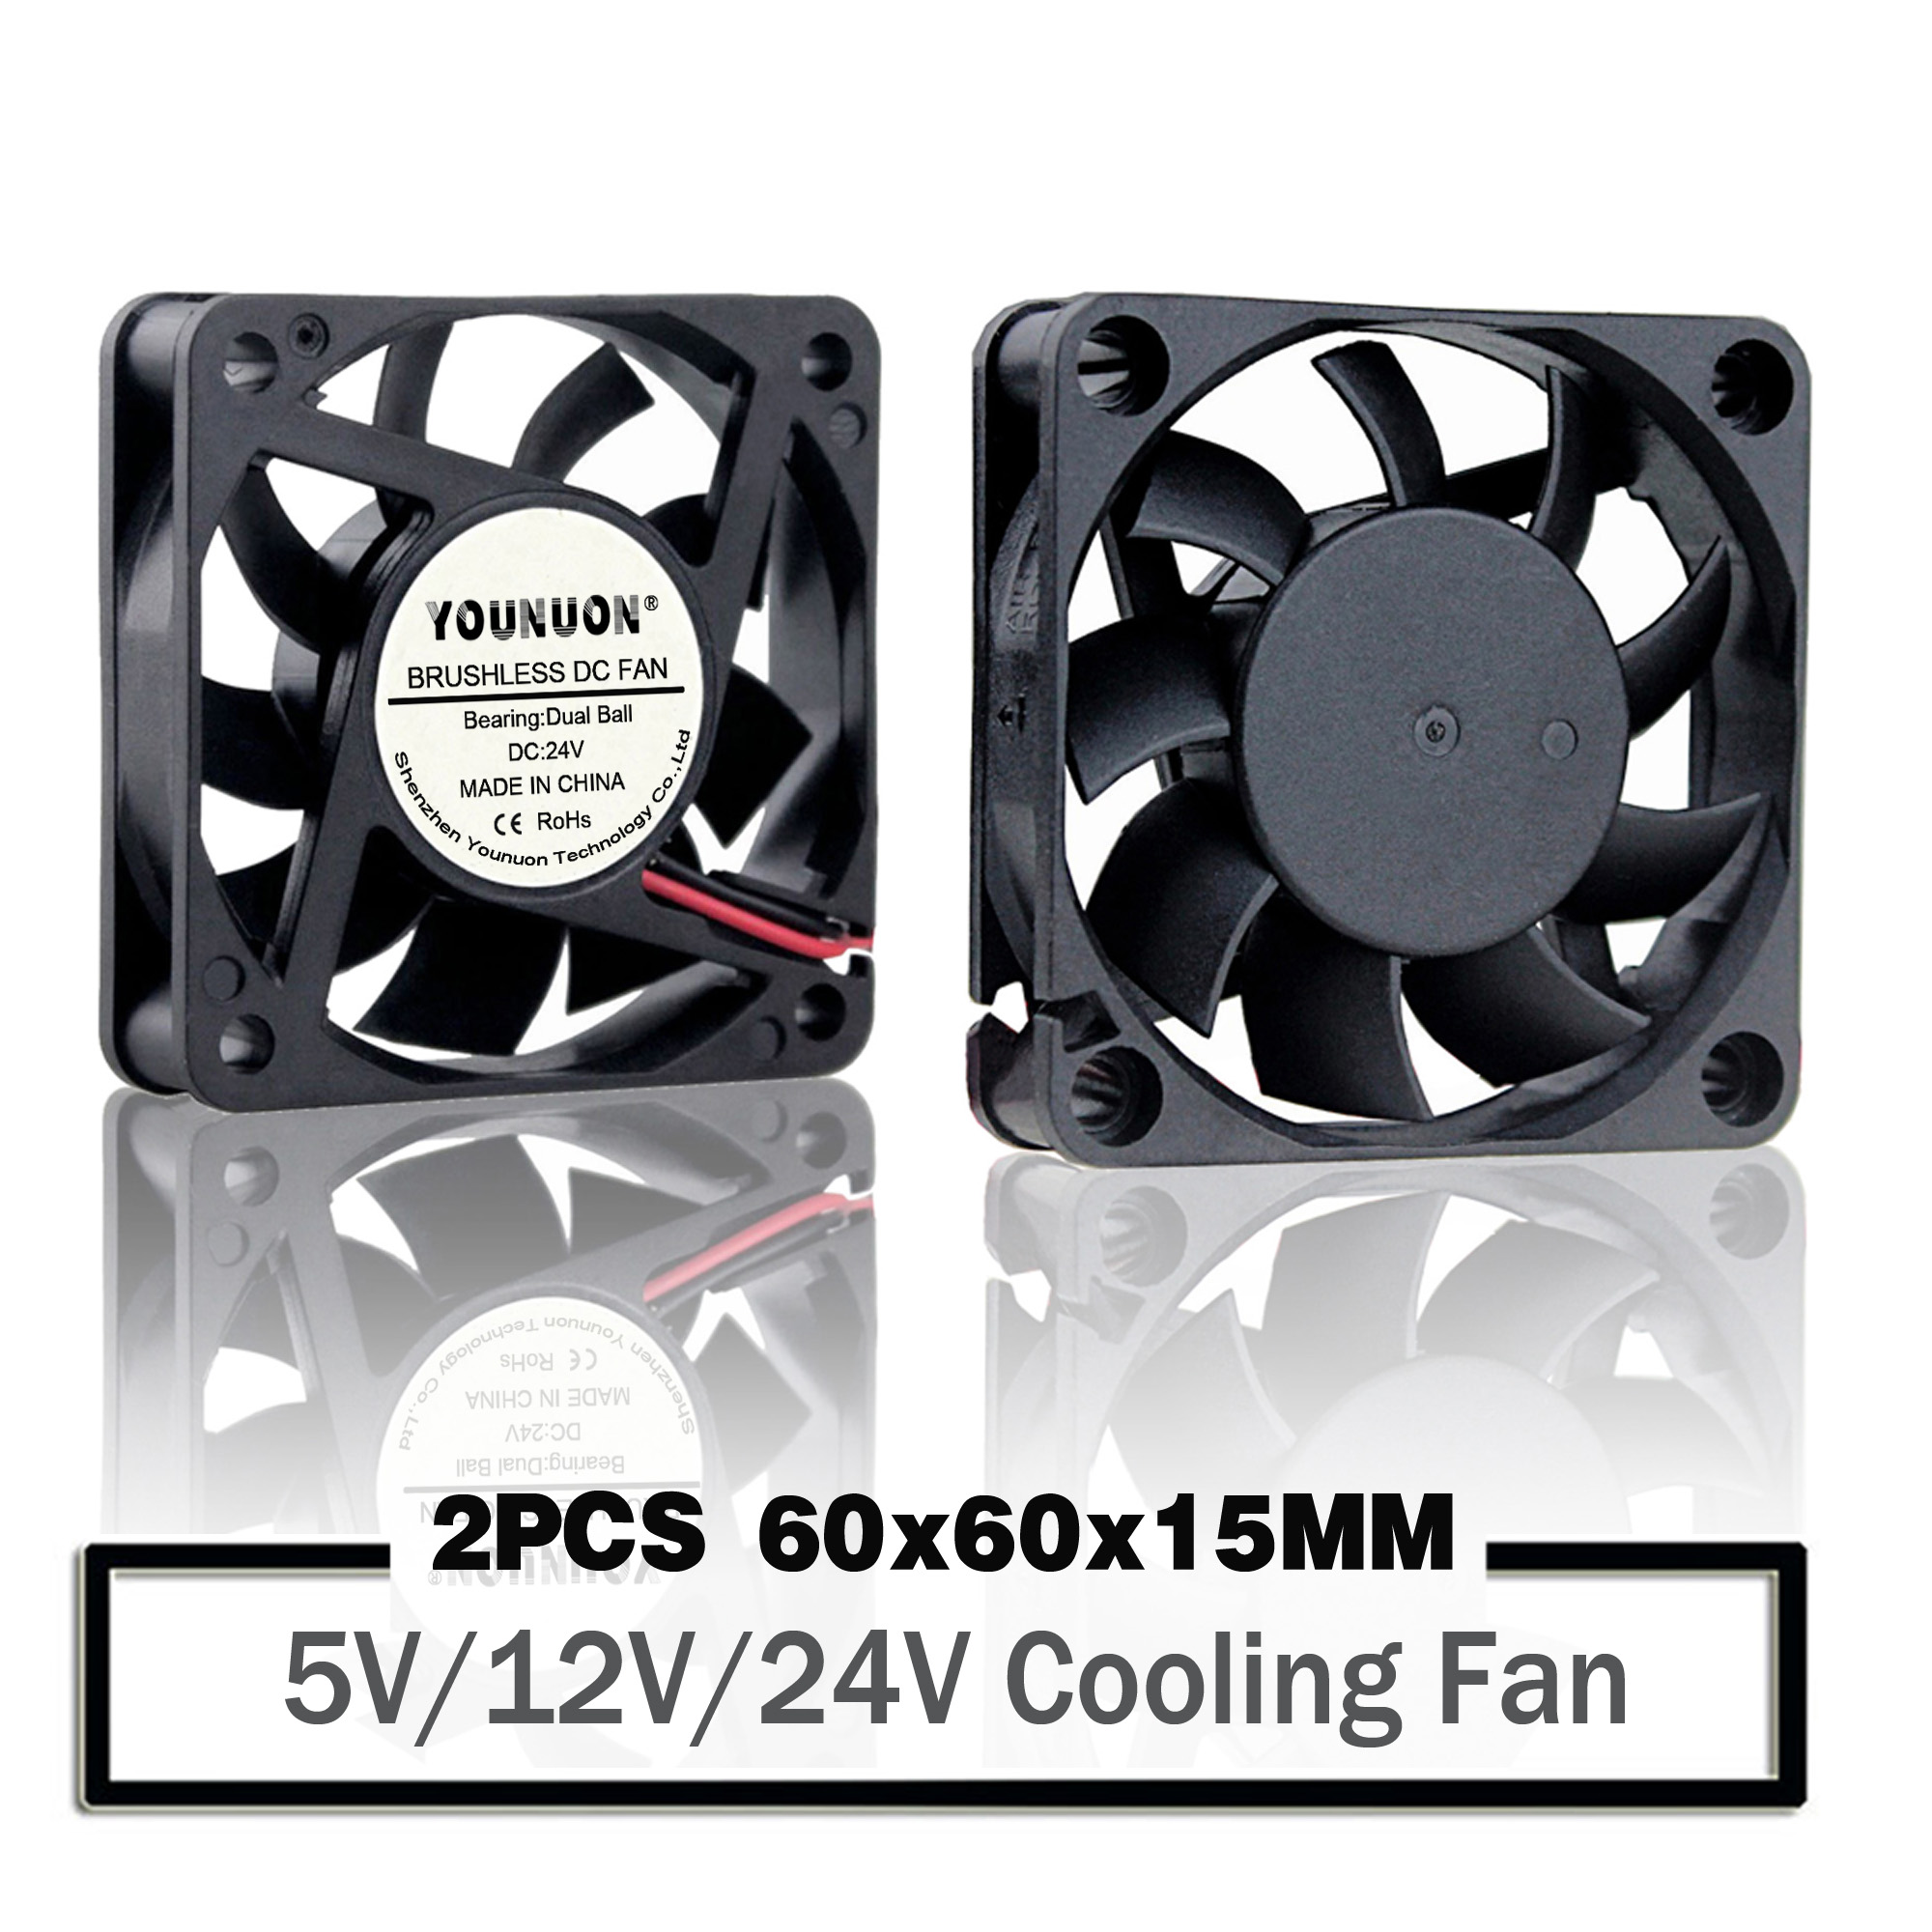 2PCS YOUNUON <font><b>60mm</b></font> 6015 <font><b>5V</b></font> 12V 24V Brushless USB 2PIN 3PIN DC Cooler <font><b>Fan</b></font> 60x60x15mm 6010 6cm For Computer PC CPU Case Cooling image